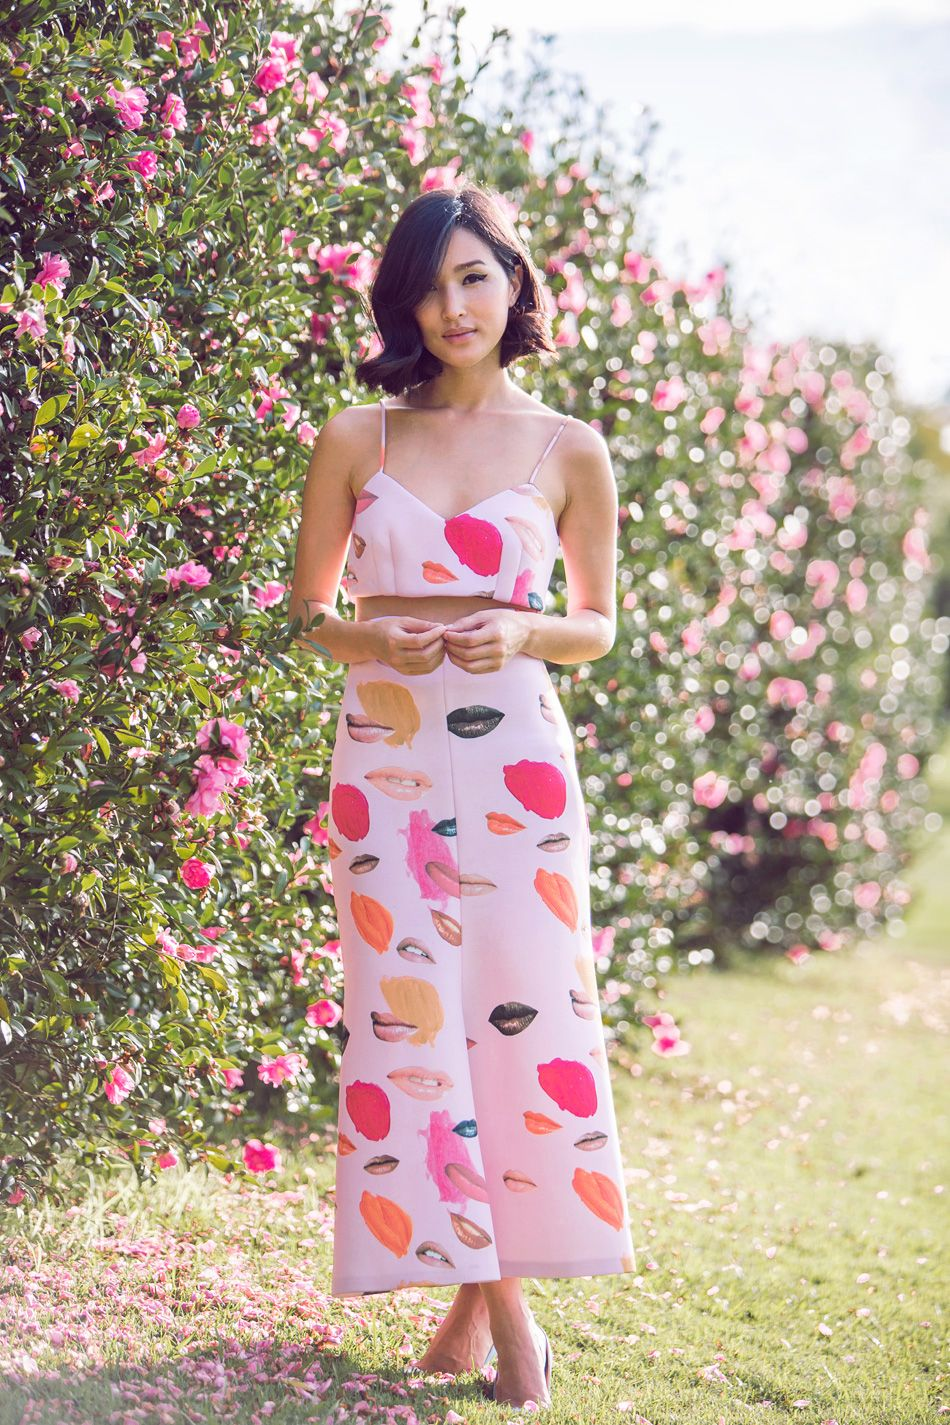 alice-mccall-nicole-warne-1 | Mix and Matching Outfits | Pinterest ...